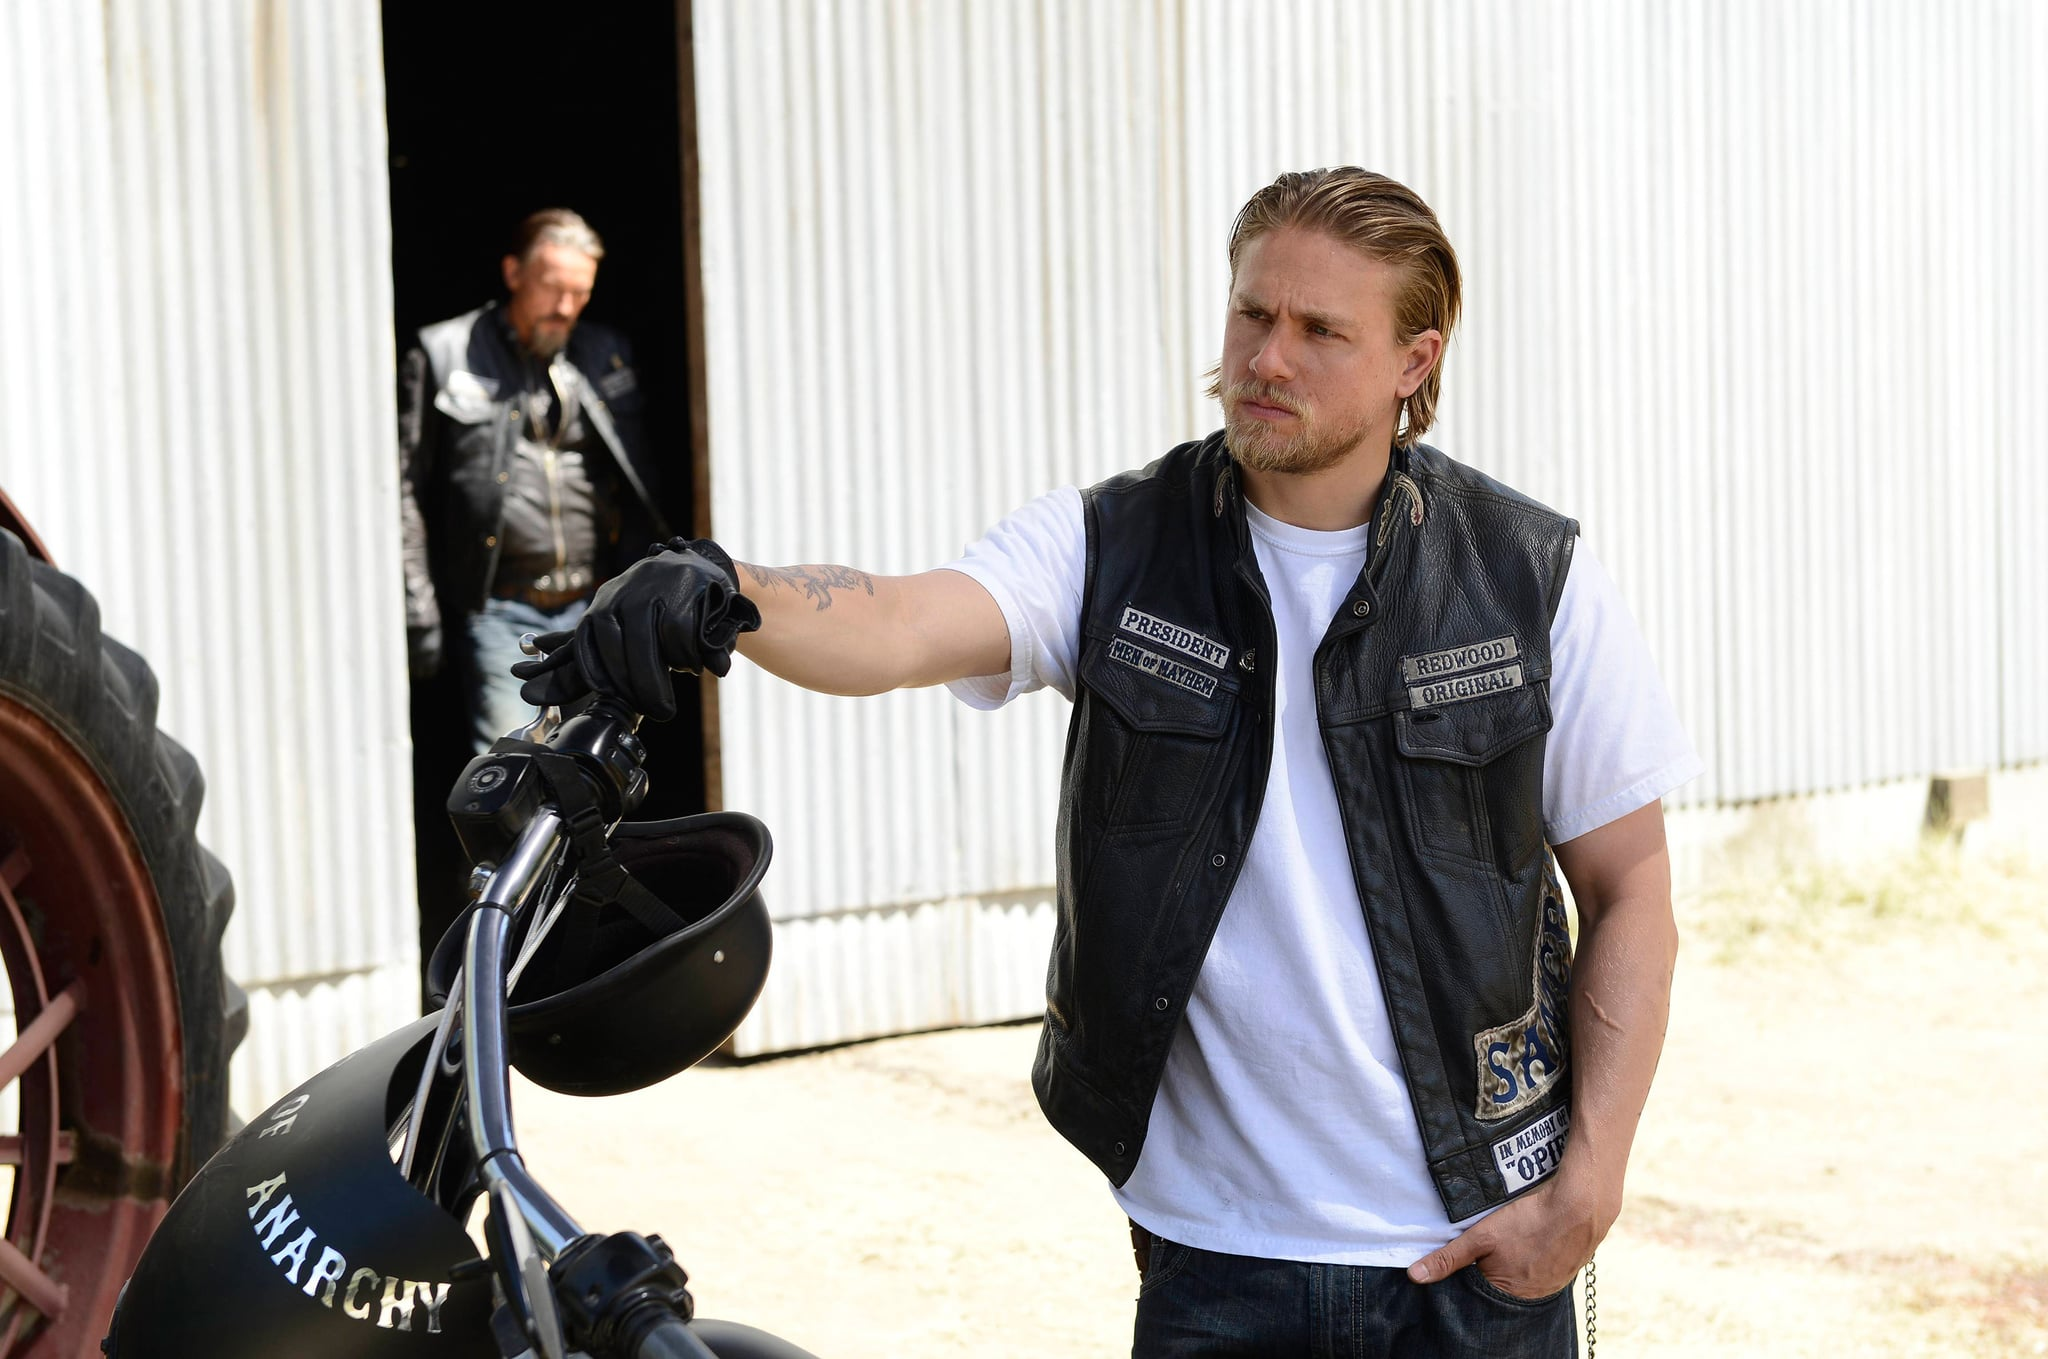 SONS OF ANARCHY, rear left: Tommy  Flanagan, foreground: Charlie Hunnam in 'Wolfsangel' (Season 6, Episode 4, aired October 1, 2013), 2008-, ph: Michael Becker/FX/courtesy Everett Collection